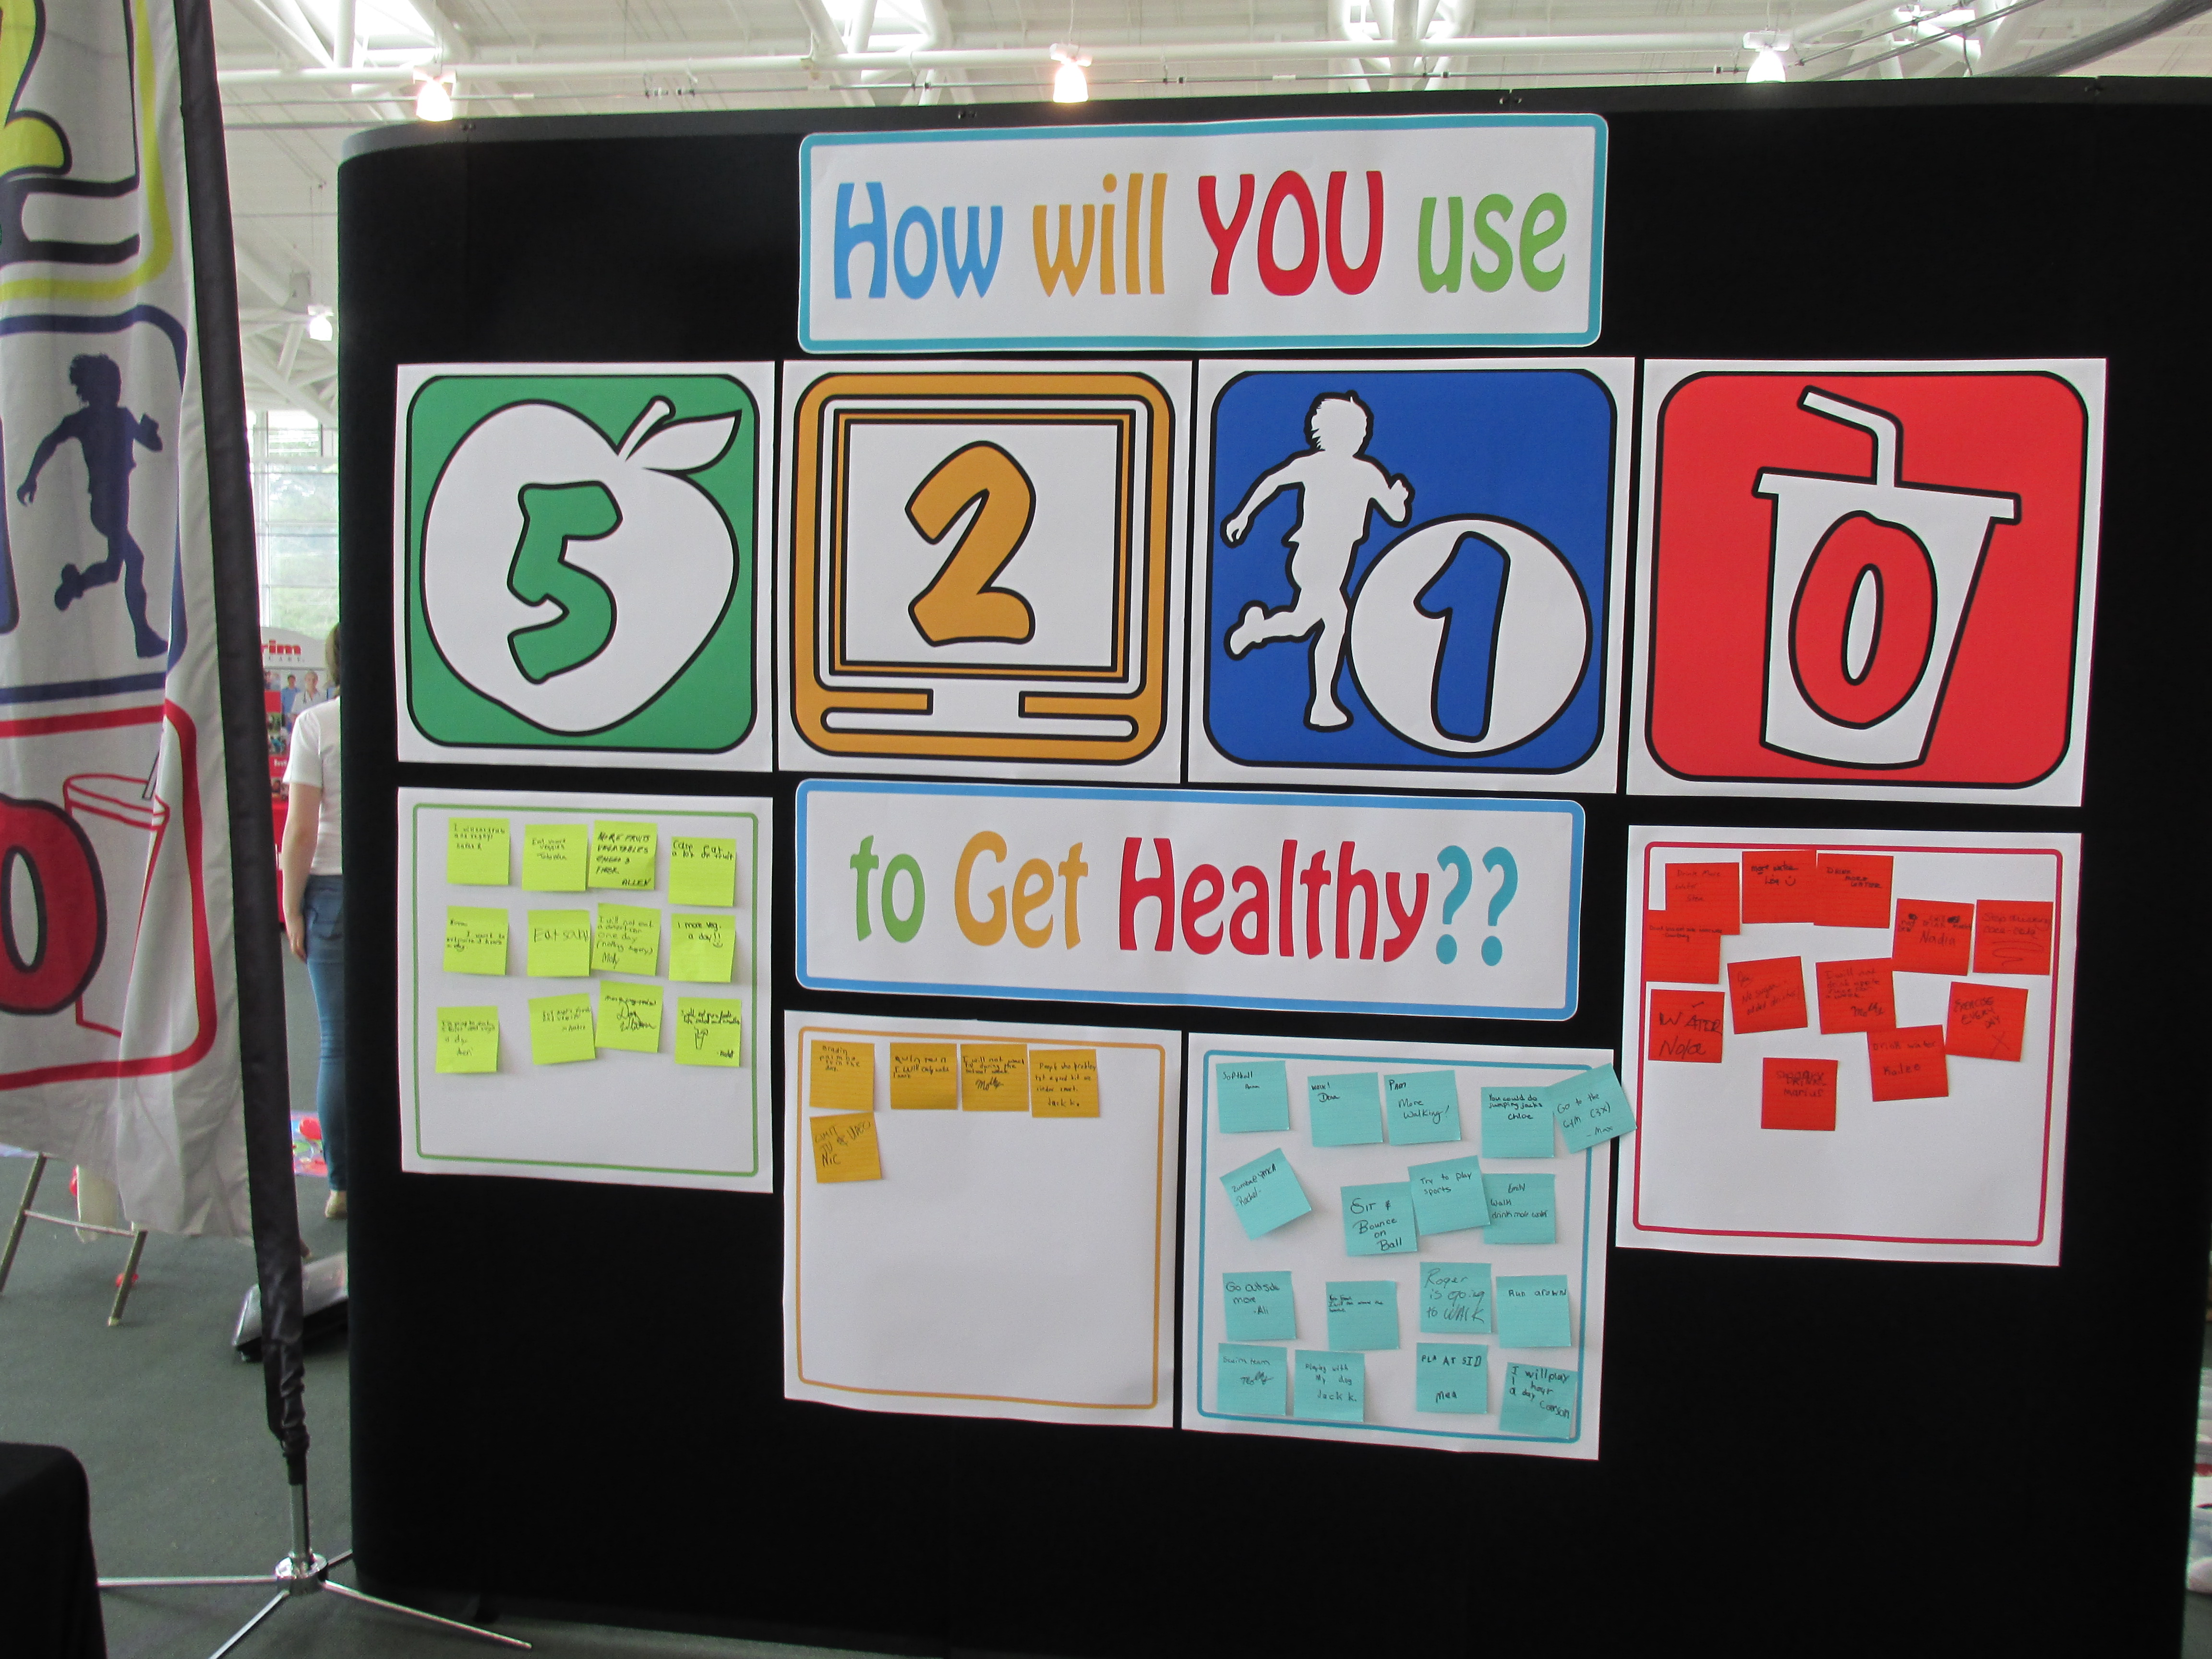 47 visitors at Earth /day pledged to get healthy by using 5-2-1-0 strategies everyday!